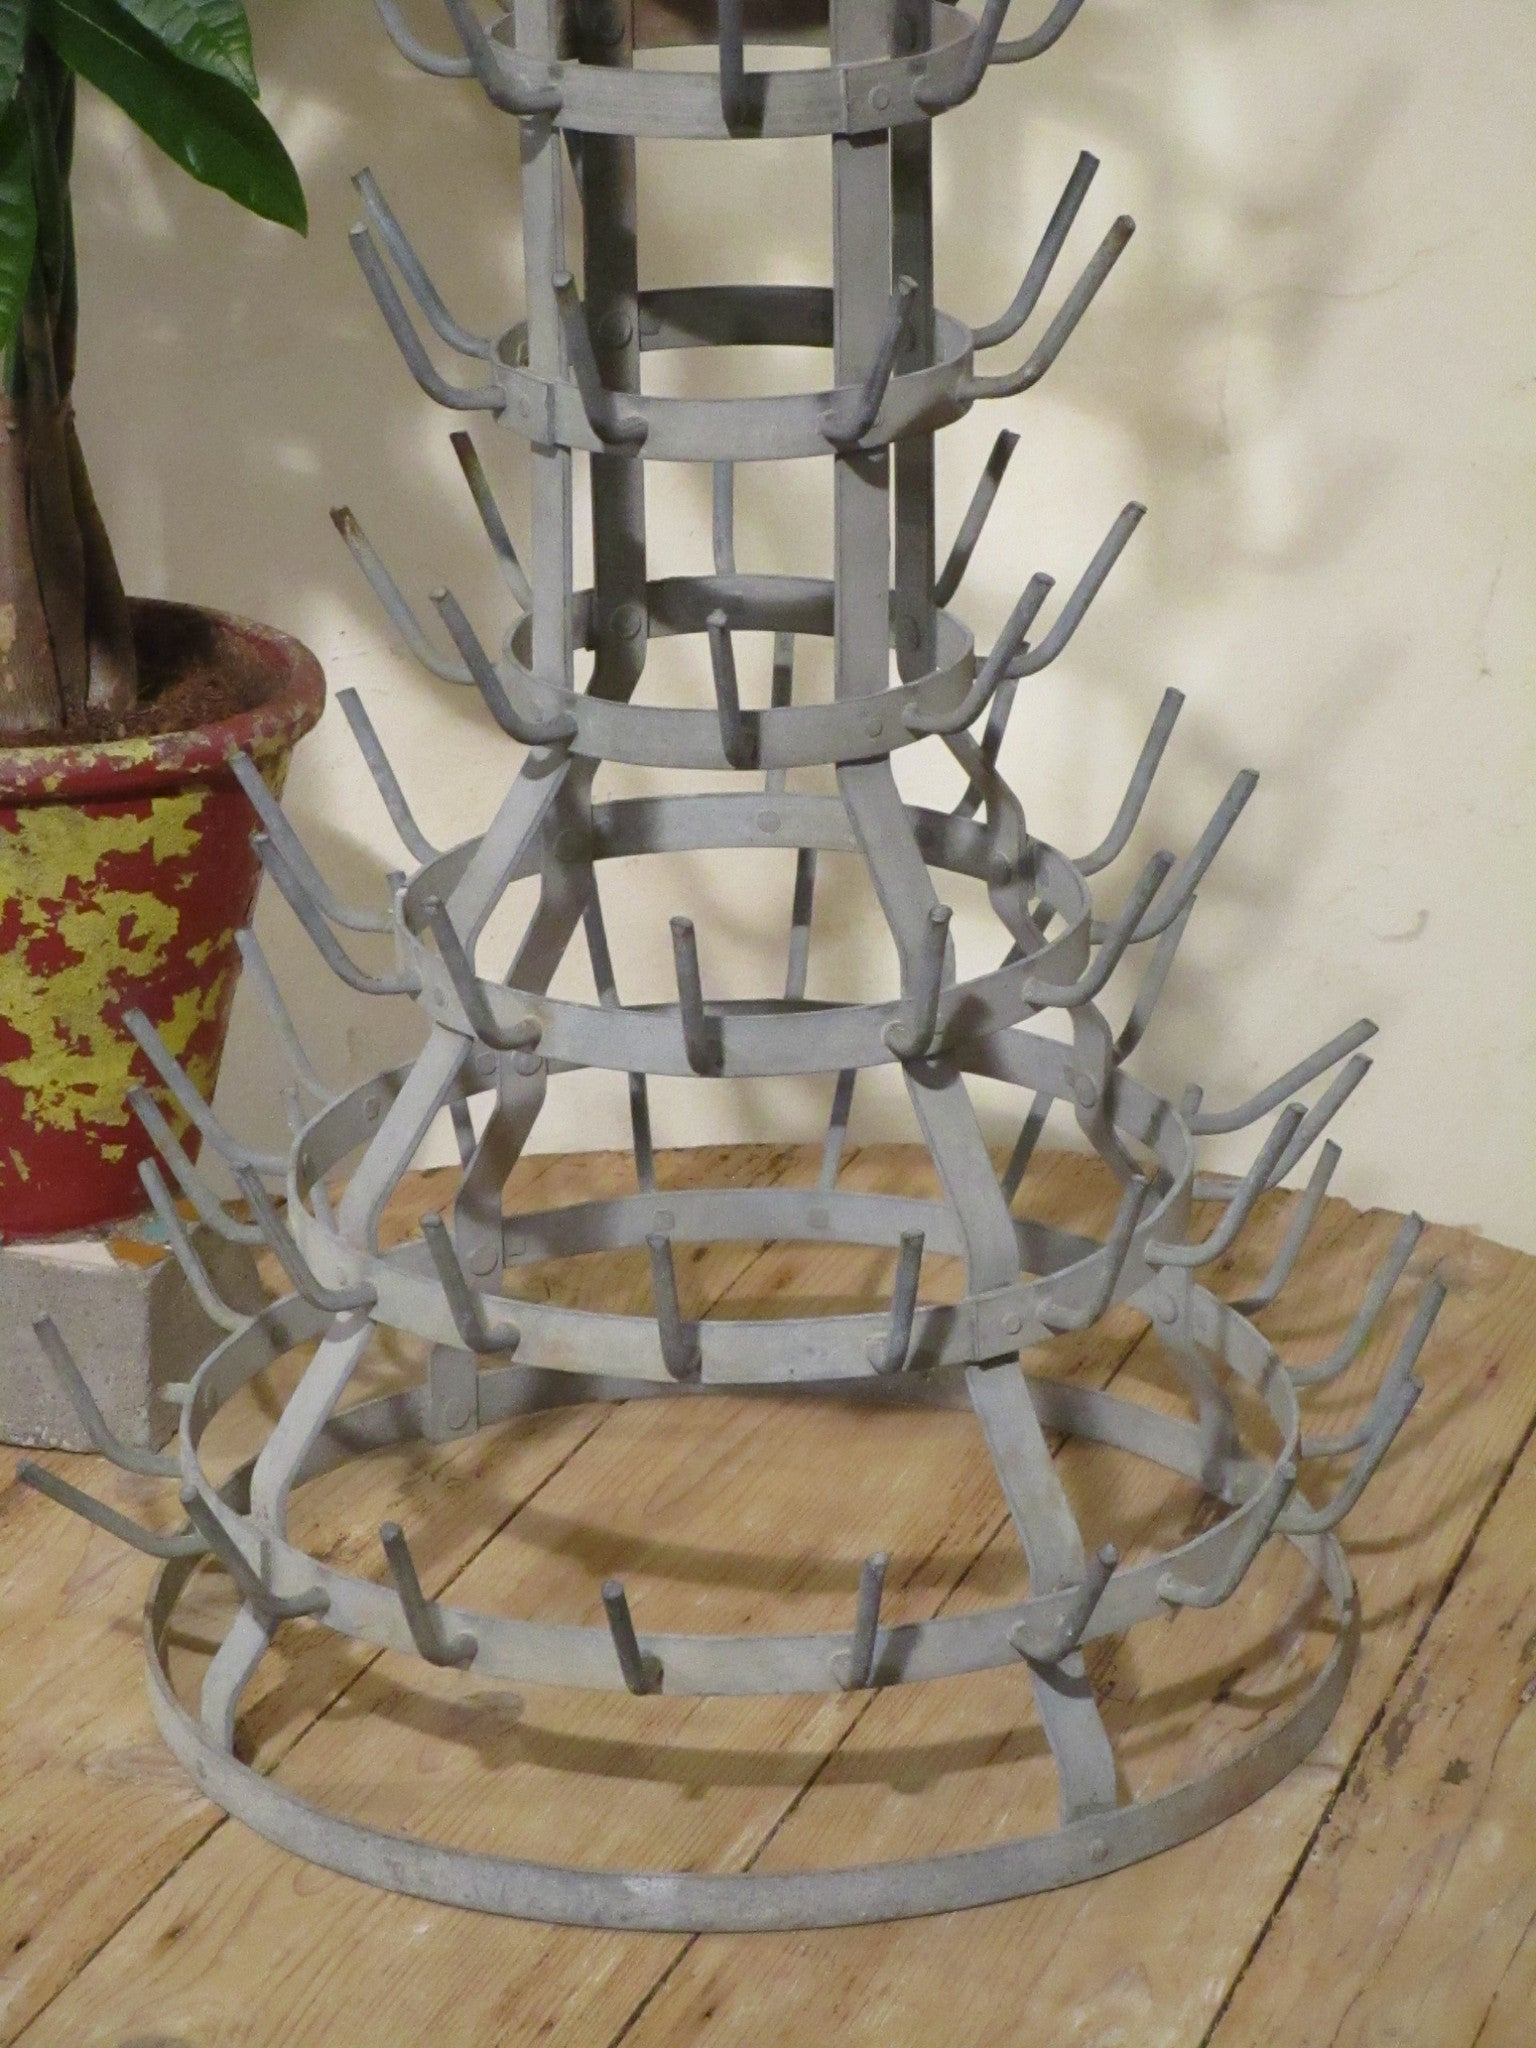 Base detail French bottle tree galvanized porcupine - cellar